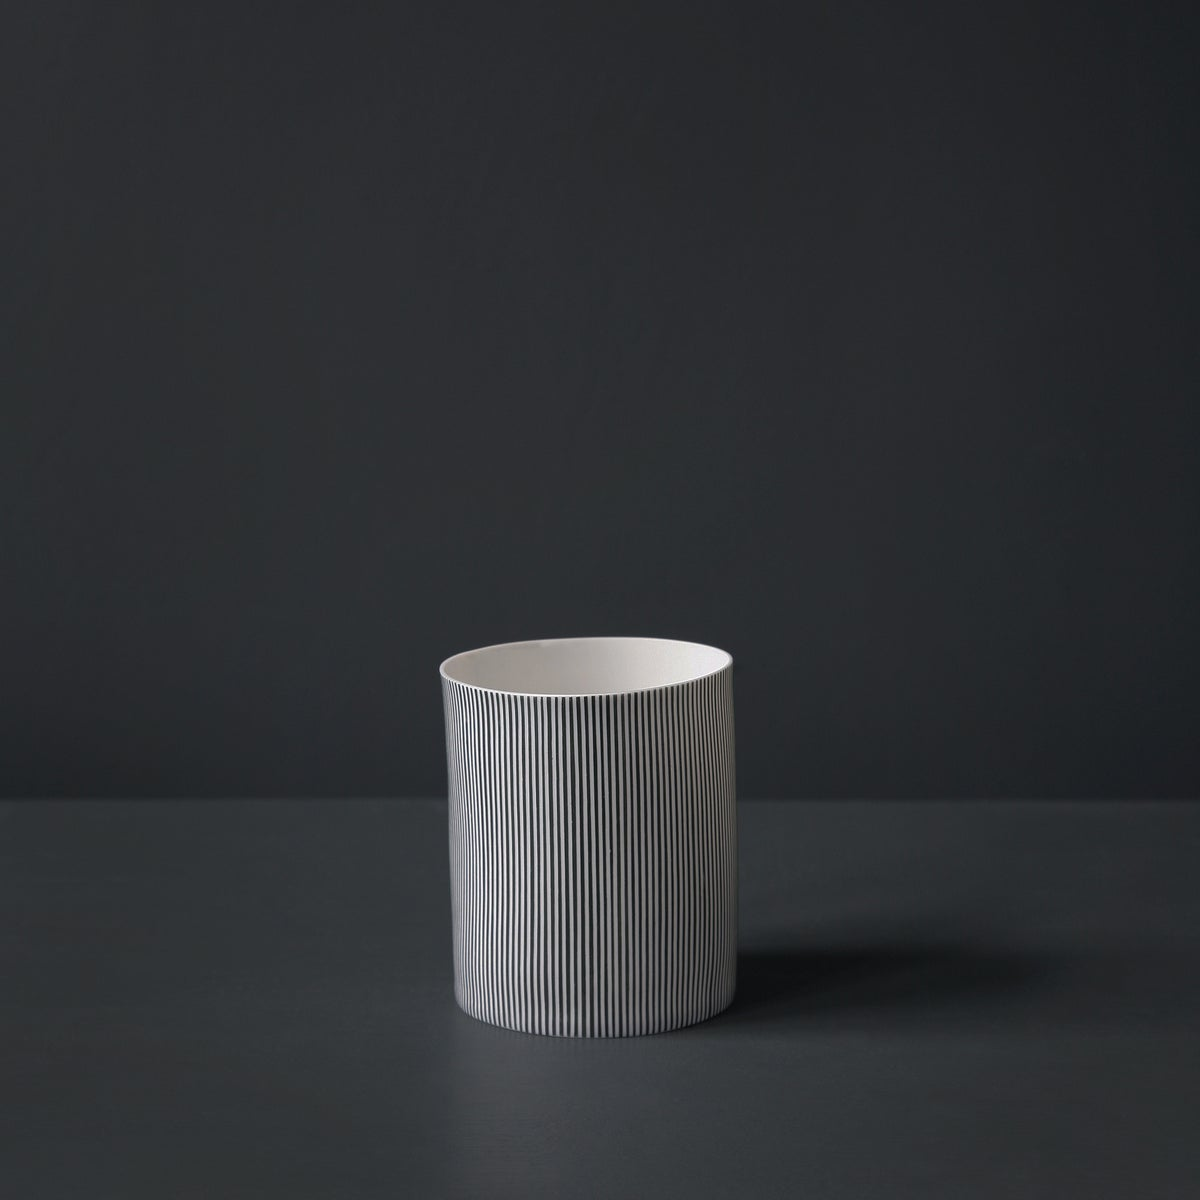 Image of Straight Stripe Vessel #2 by Justine Allison.